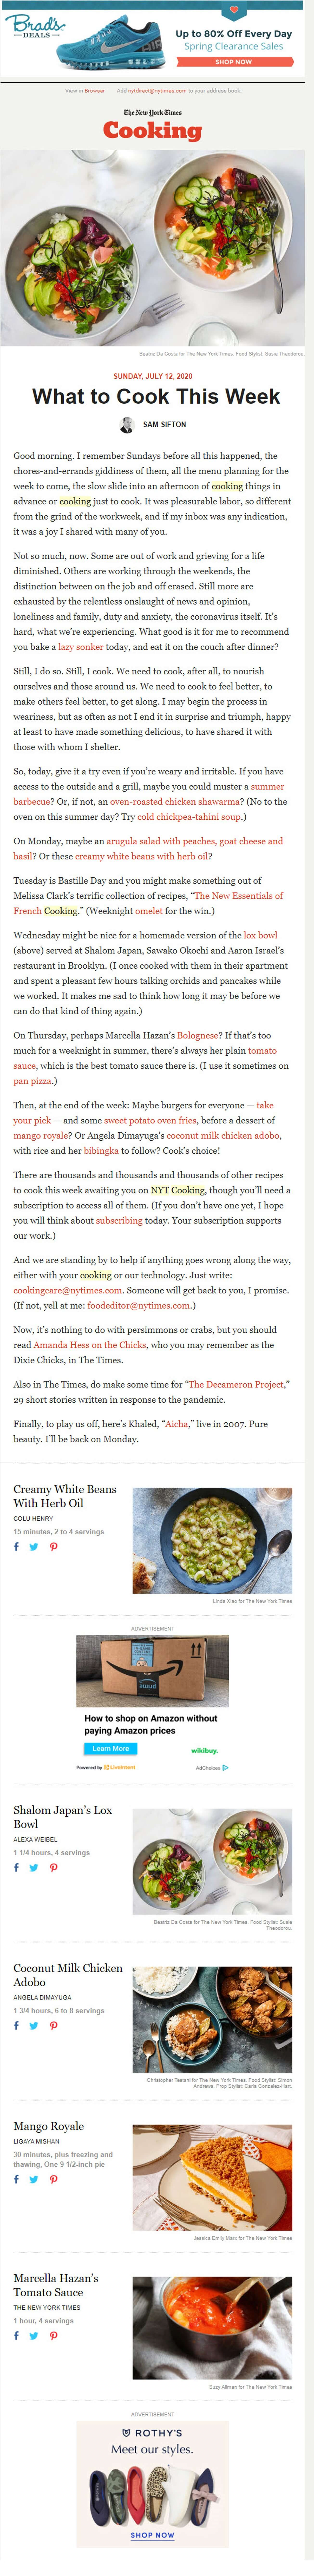 NYT Cooking Offers Multiple Email Ads in Weekly Newsletter